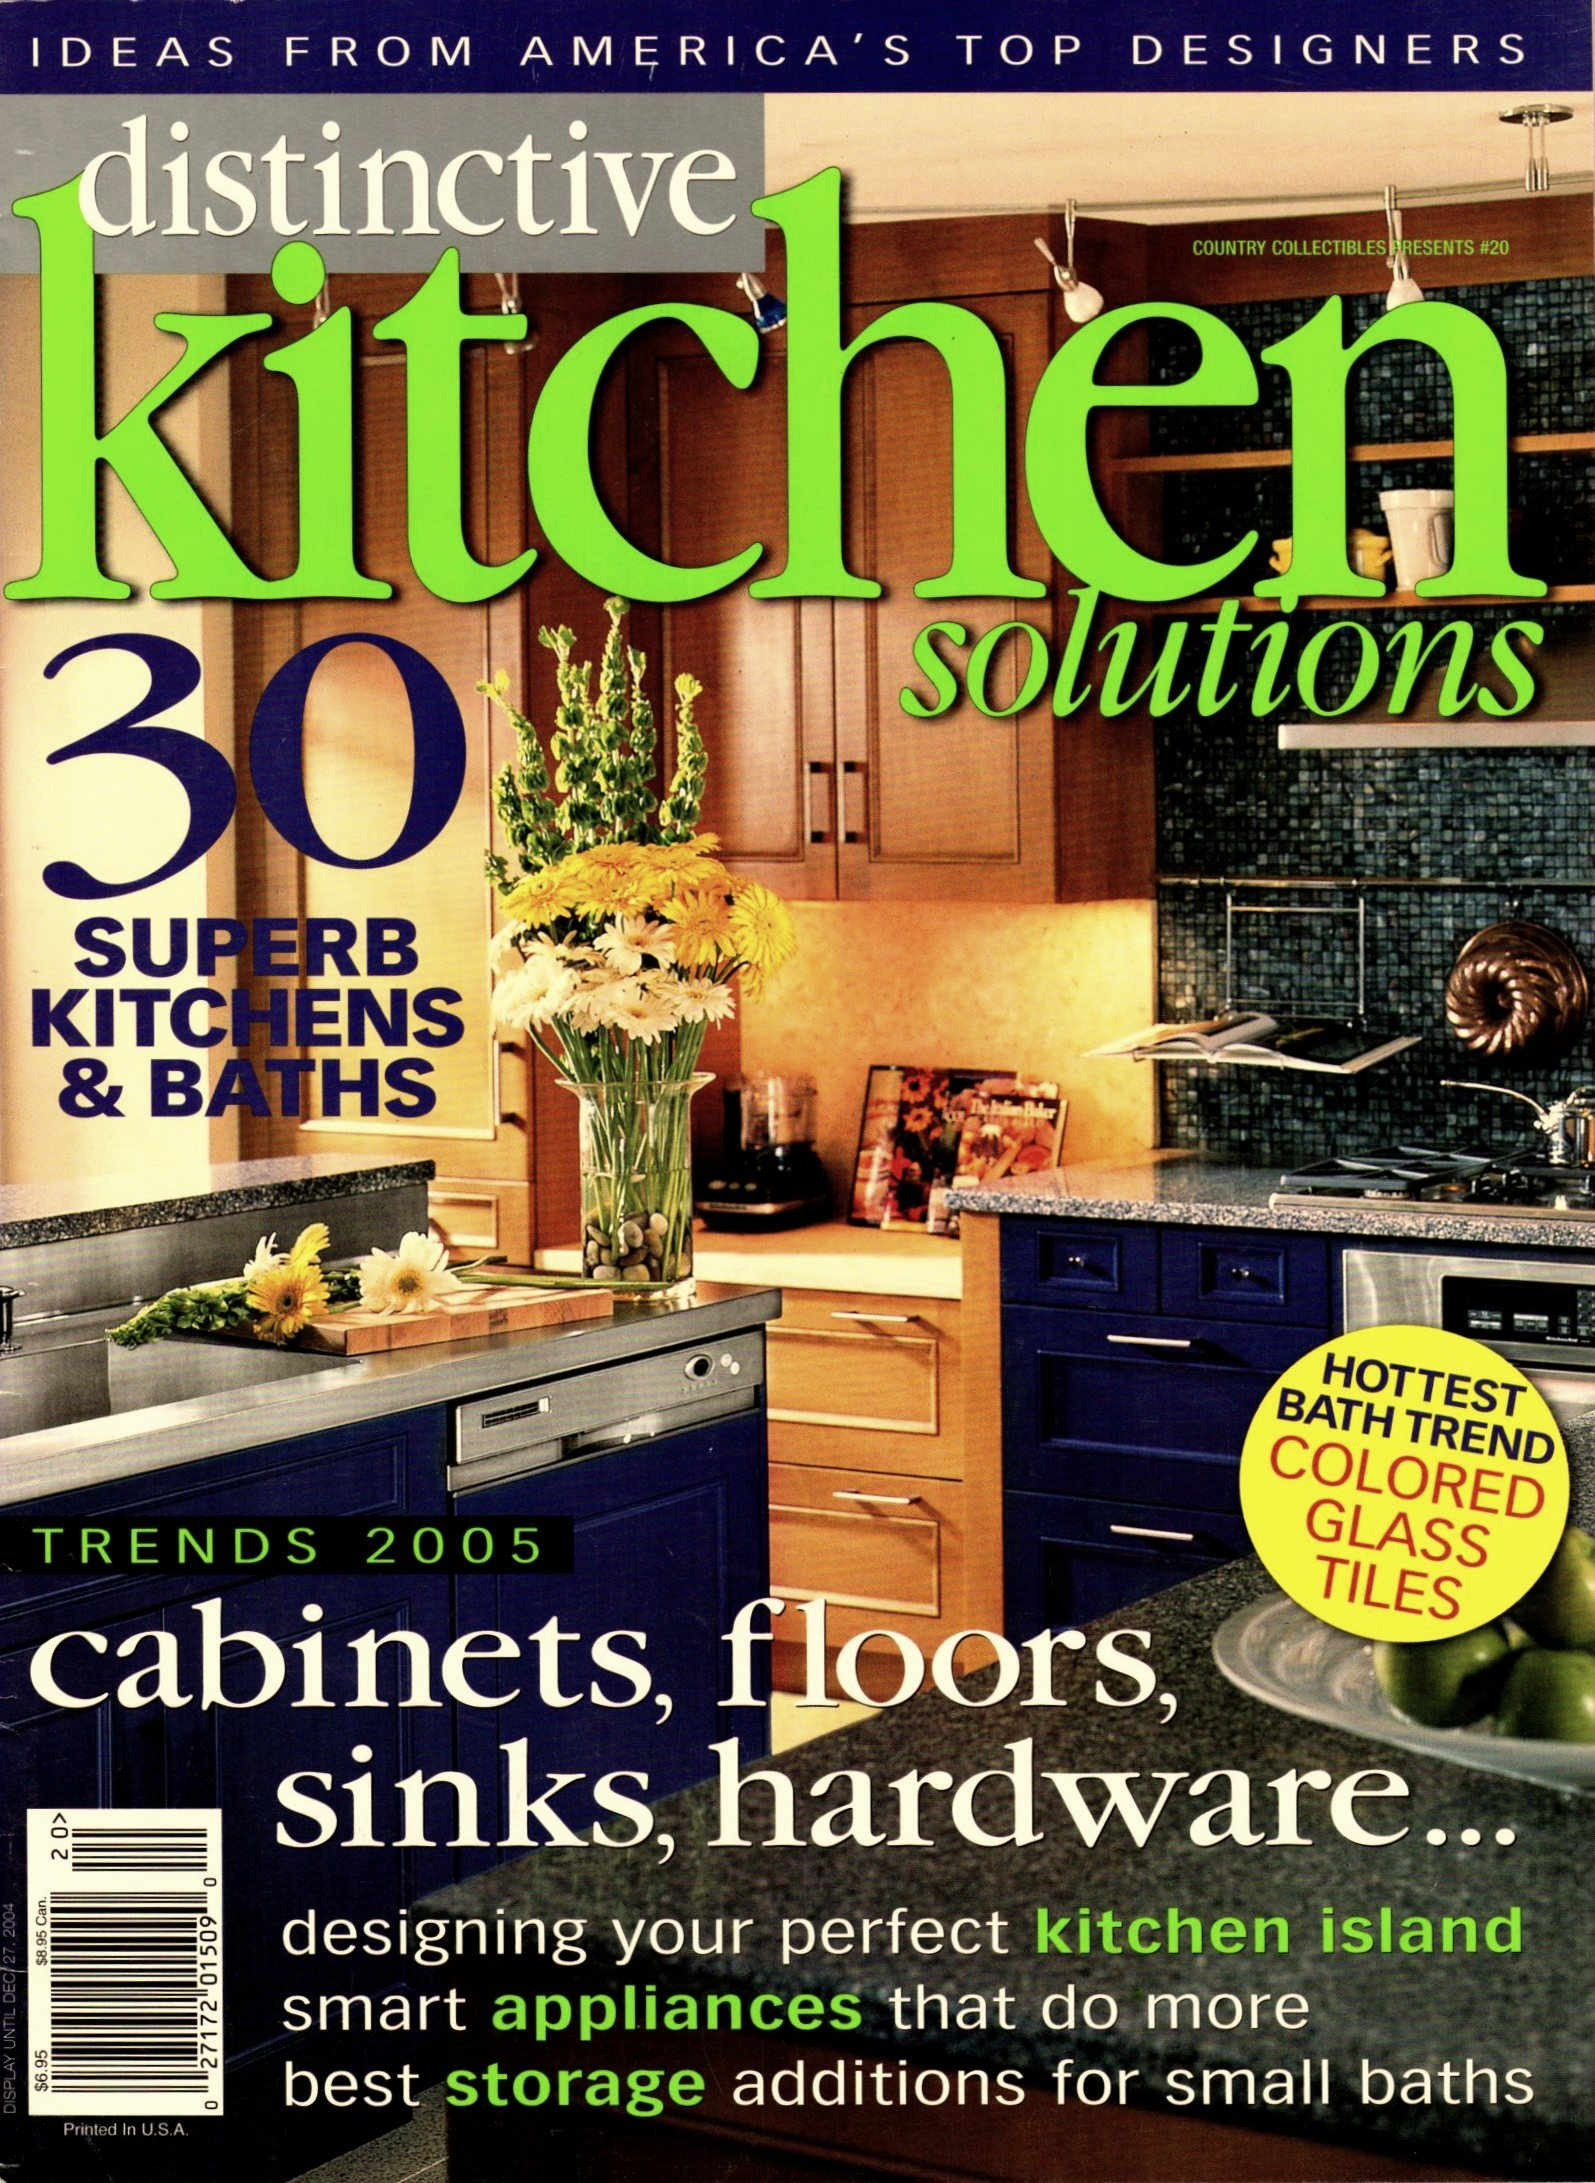 Distinctive Kitchen Solutions, December 2004